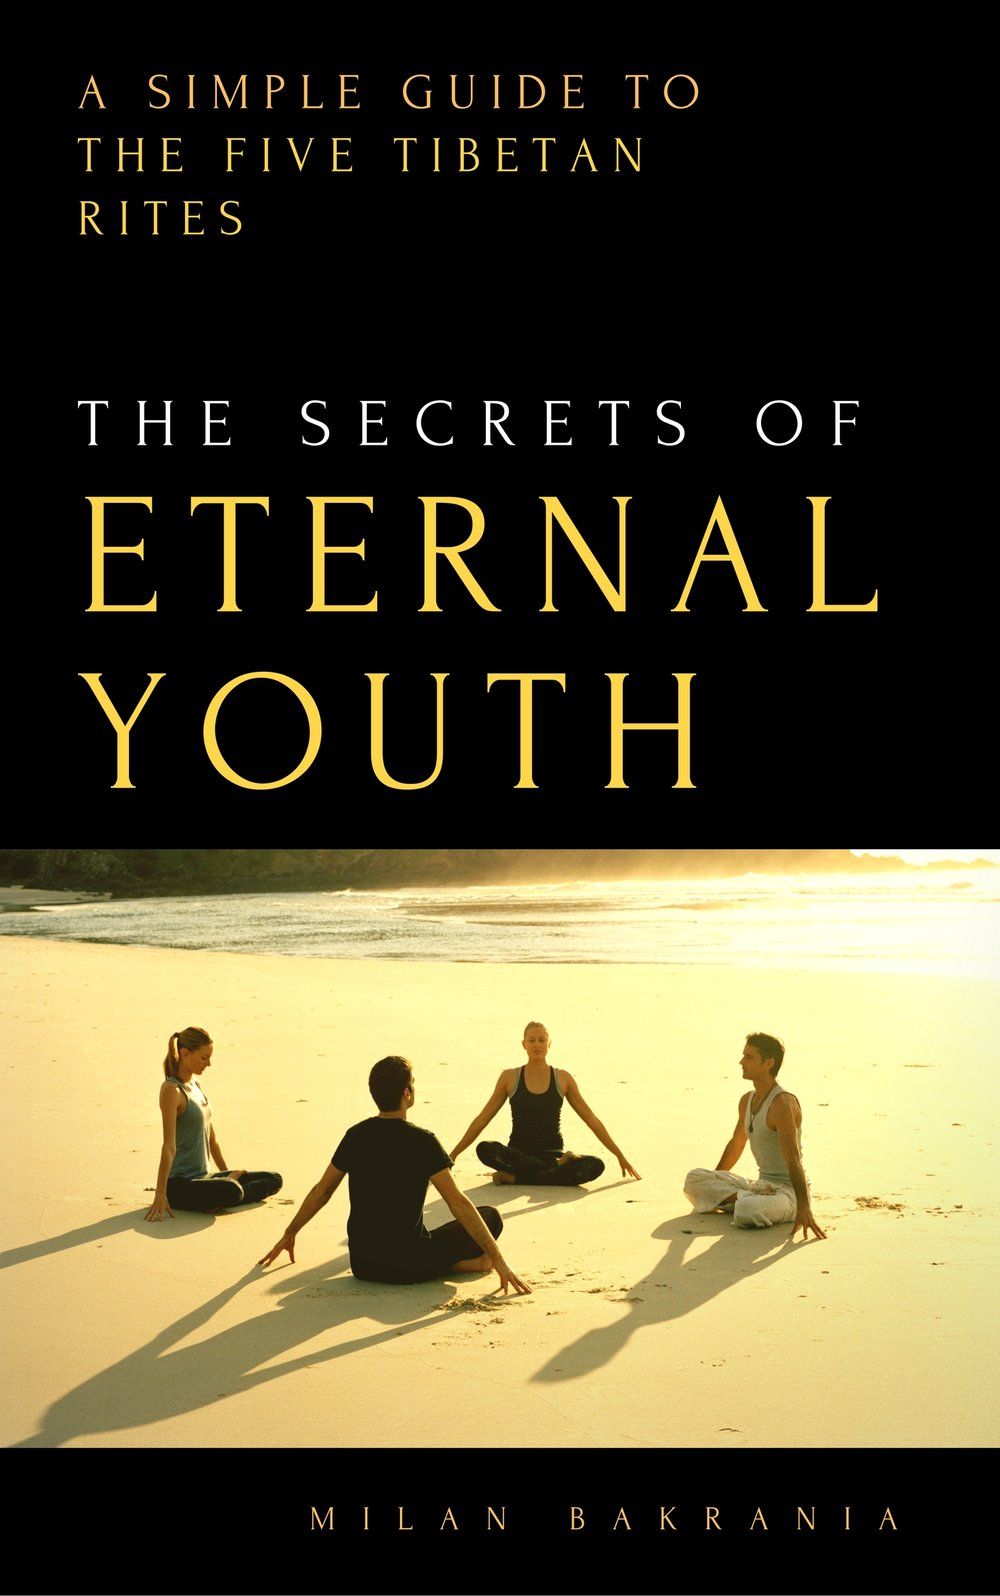 The Secrets of Eternal Youth - In a remote monastery in the Himalayas, a group of monks disclosed a 2,500 year old secret to a retired army officer. He was shown five simple exercises known to decrease stress, improve flexibility, increase vitality...